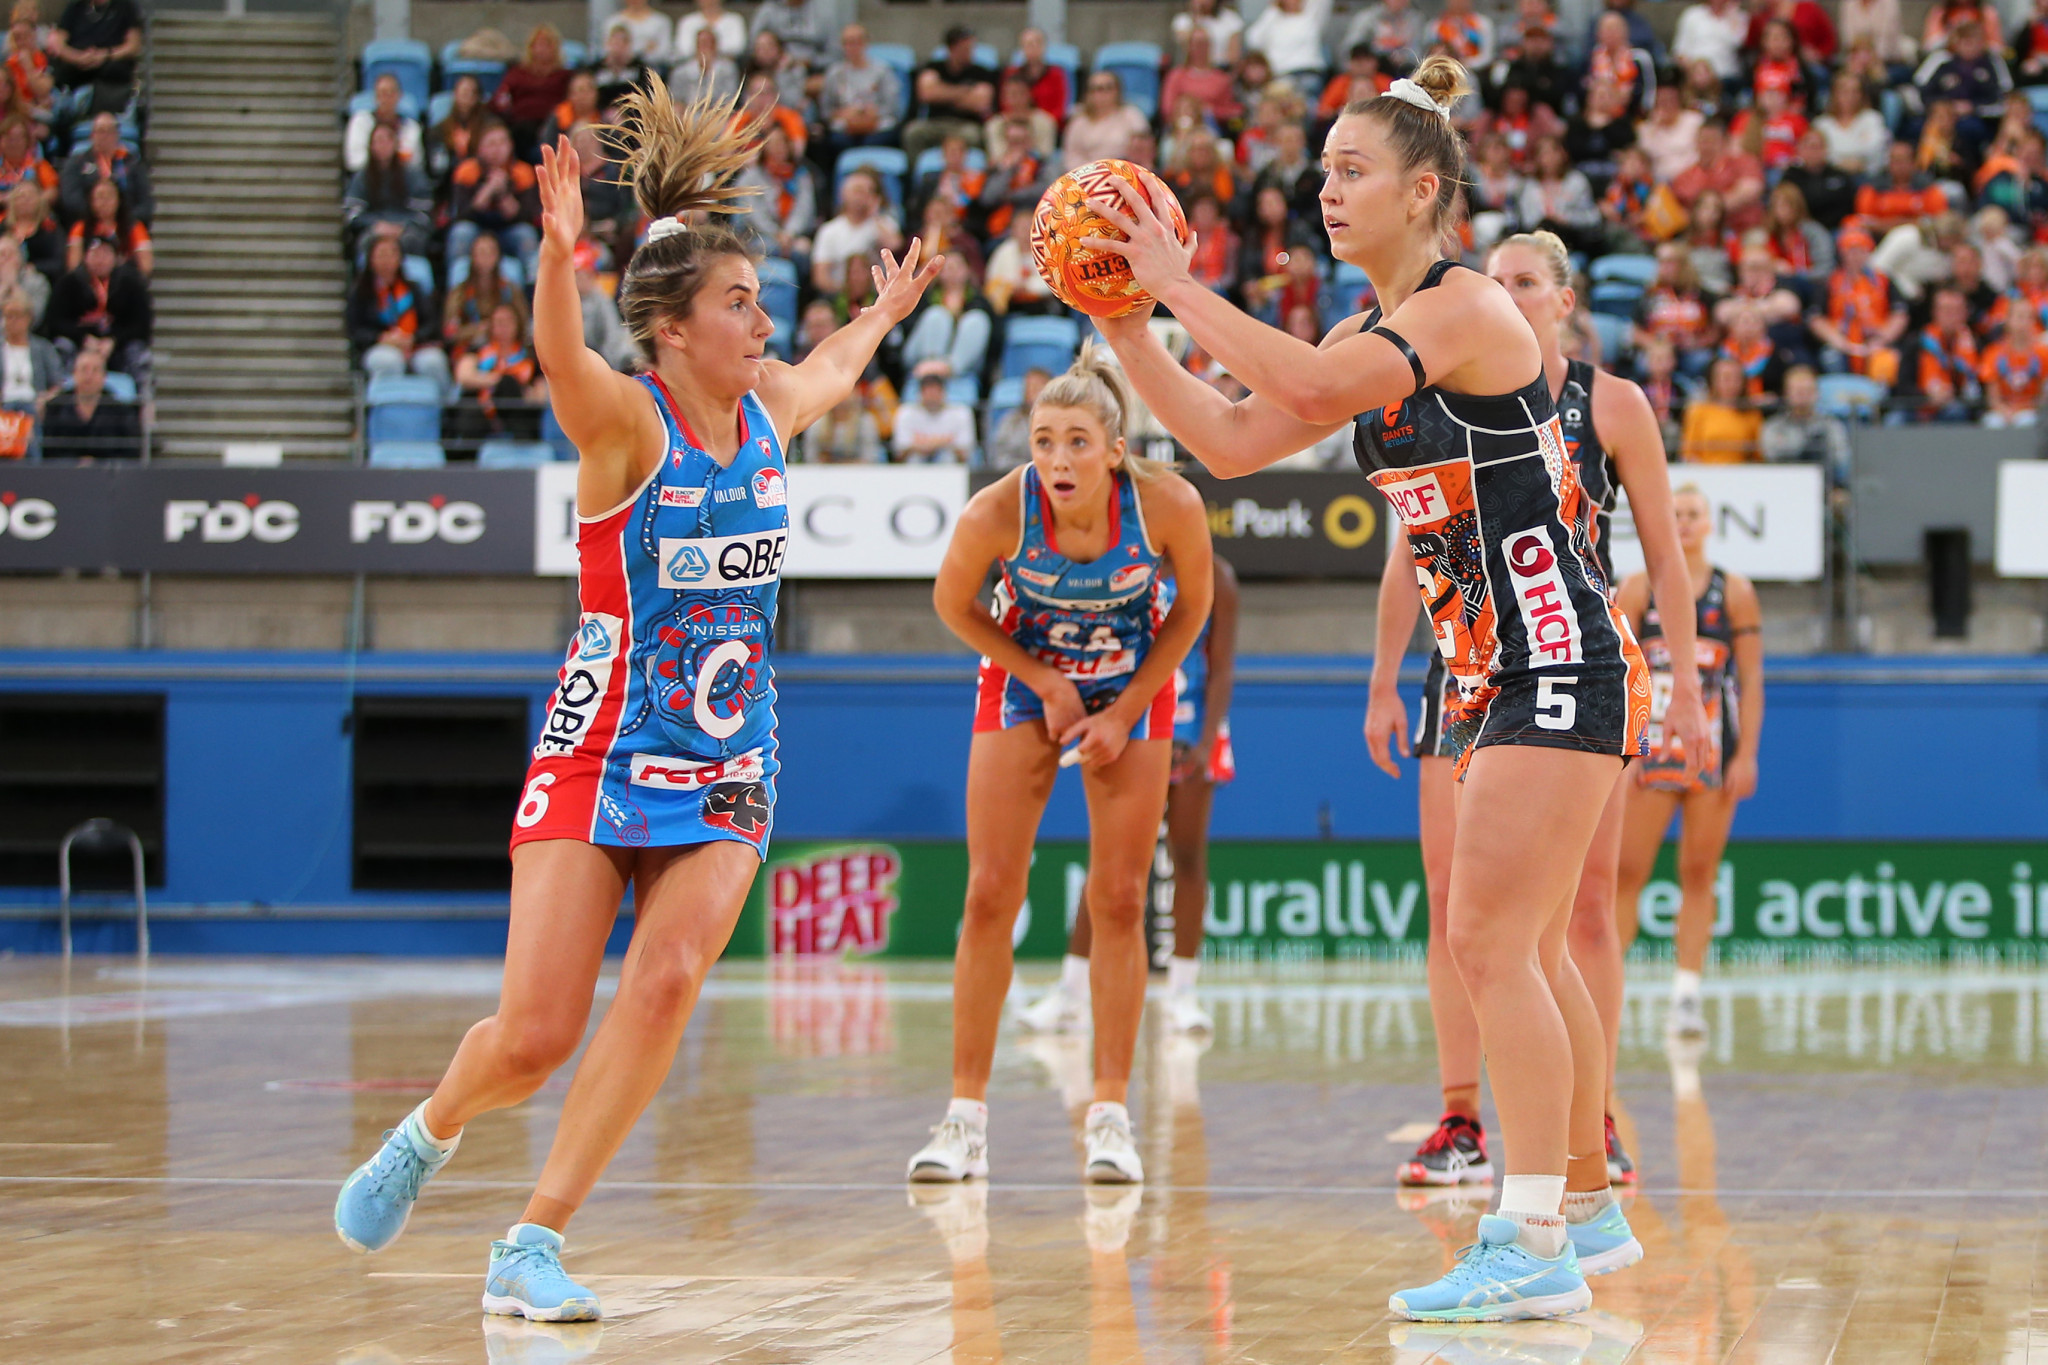 Kelly Ryan take over netball at a time when it is continuing to grow ©Getty Images